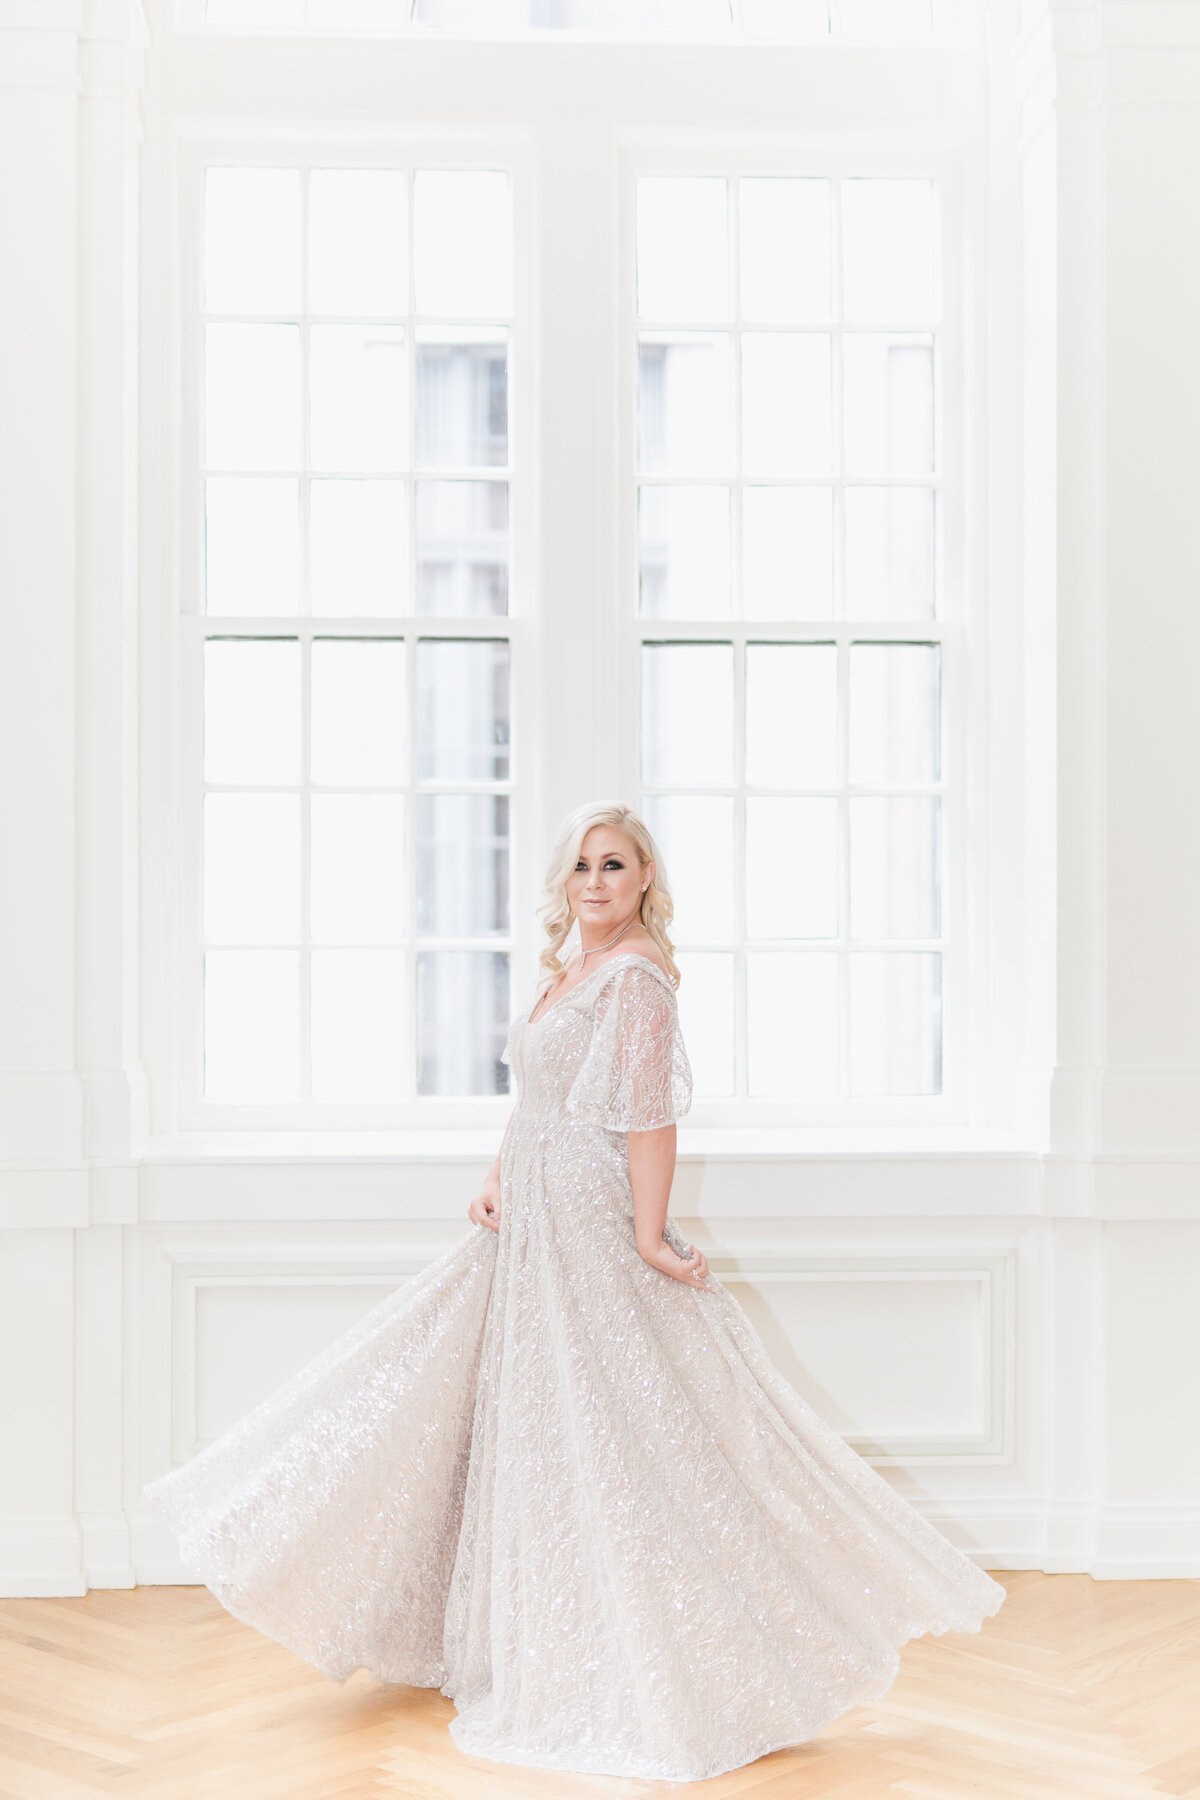 Kinspired_Nashville_StyledWeddingShoot-119